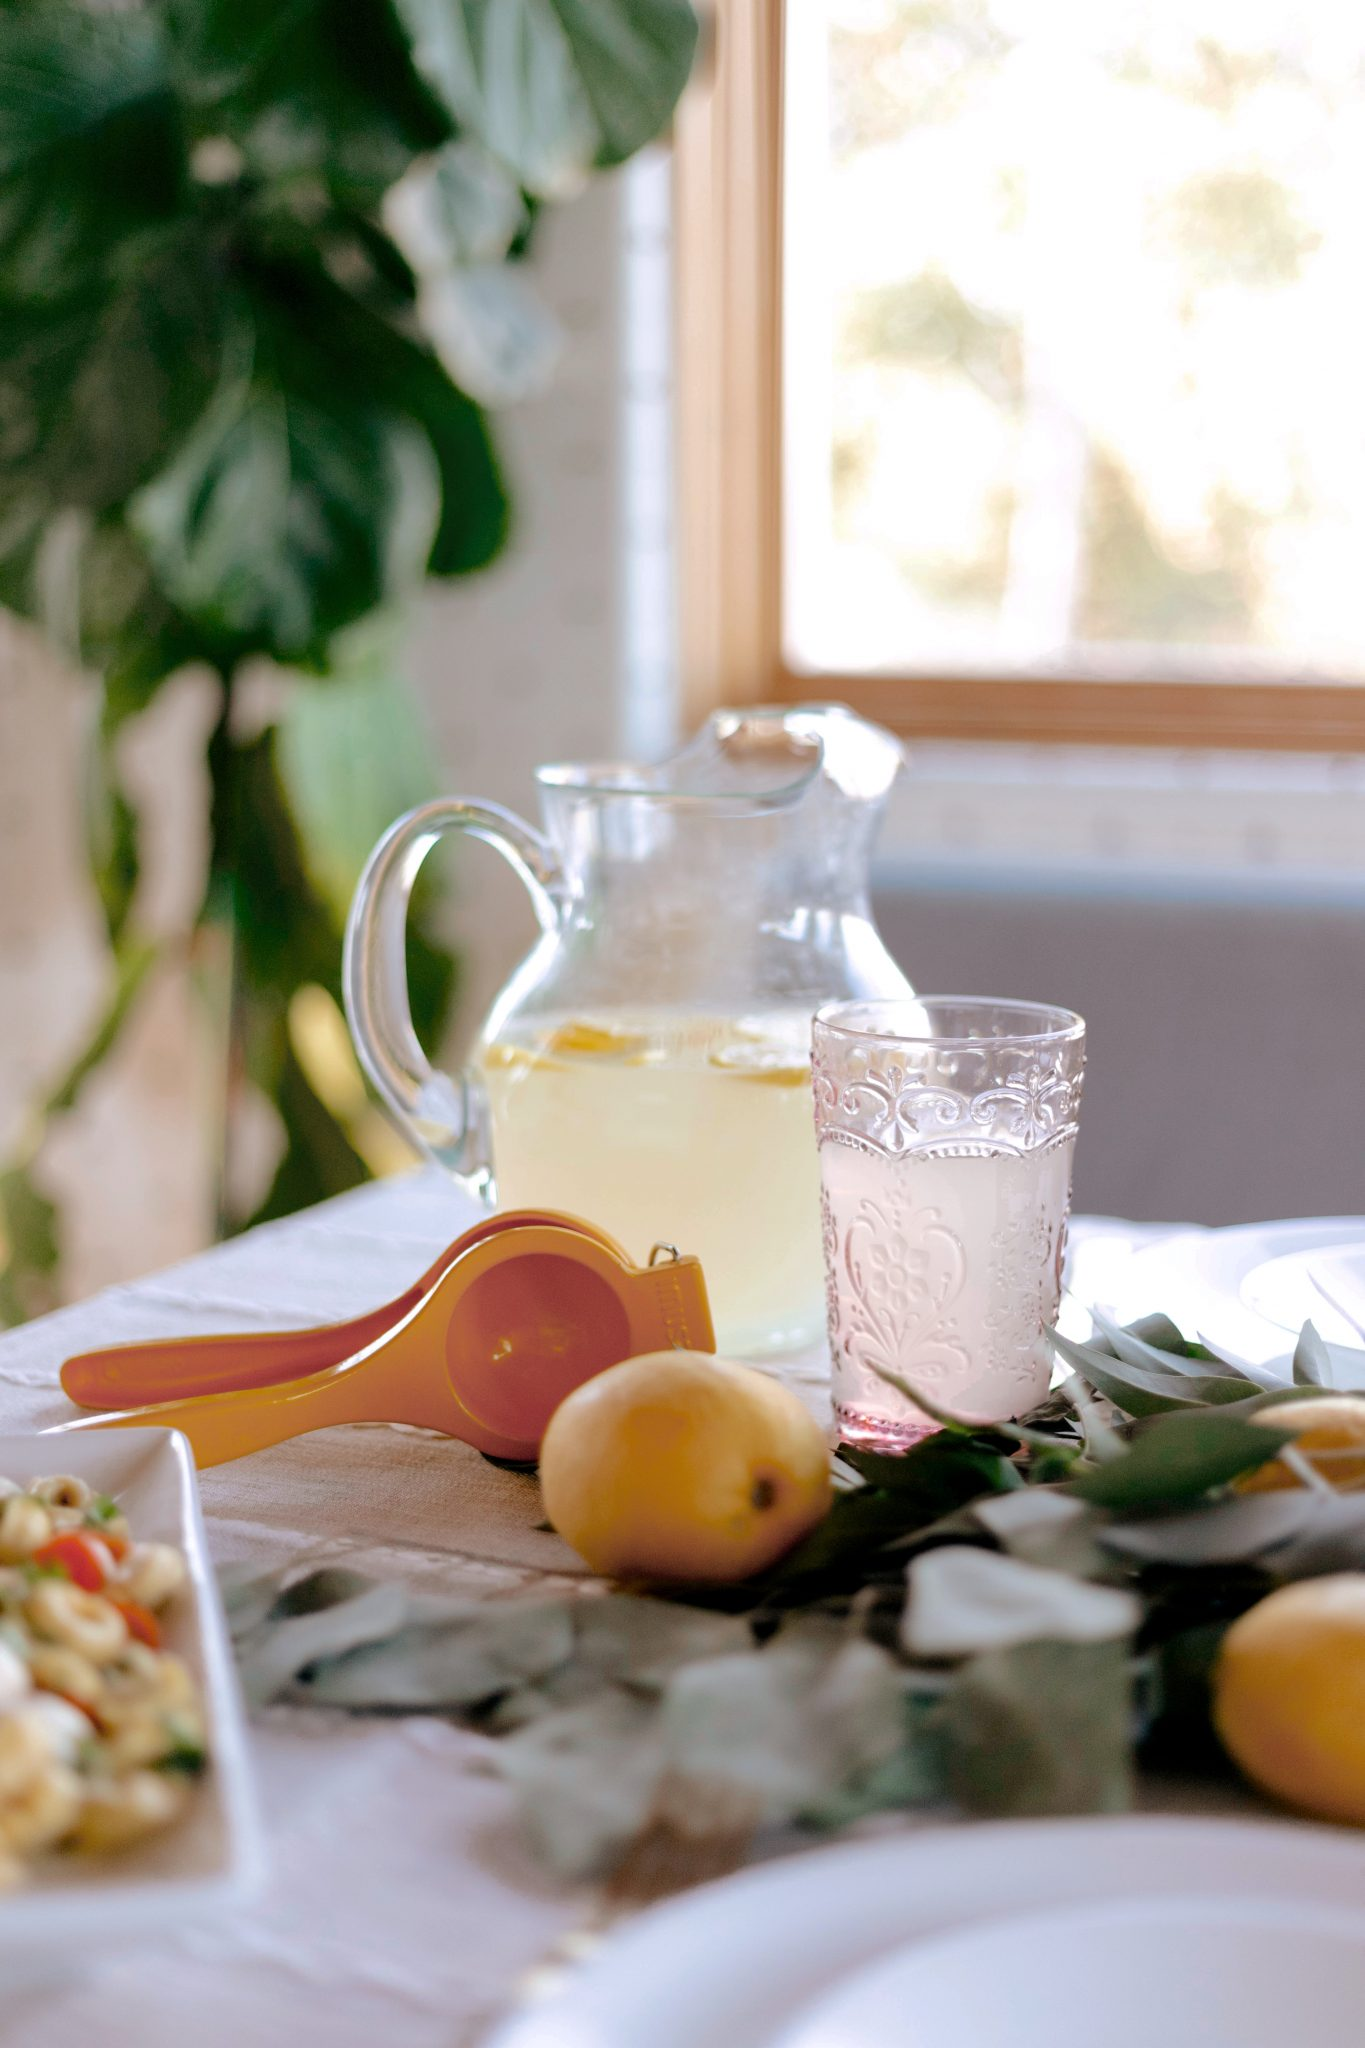 glass, pint, and fruits on table for hosting friends and family for dinner